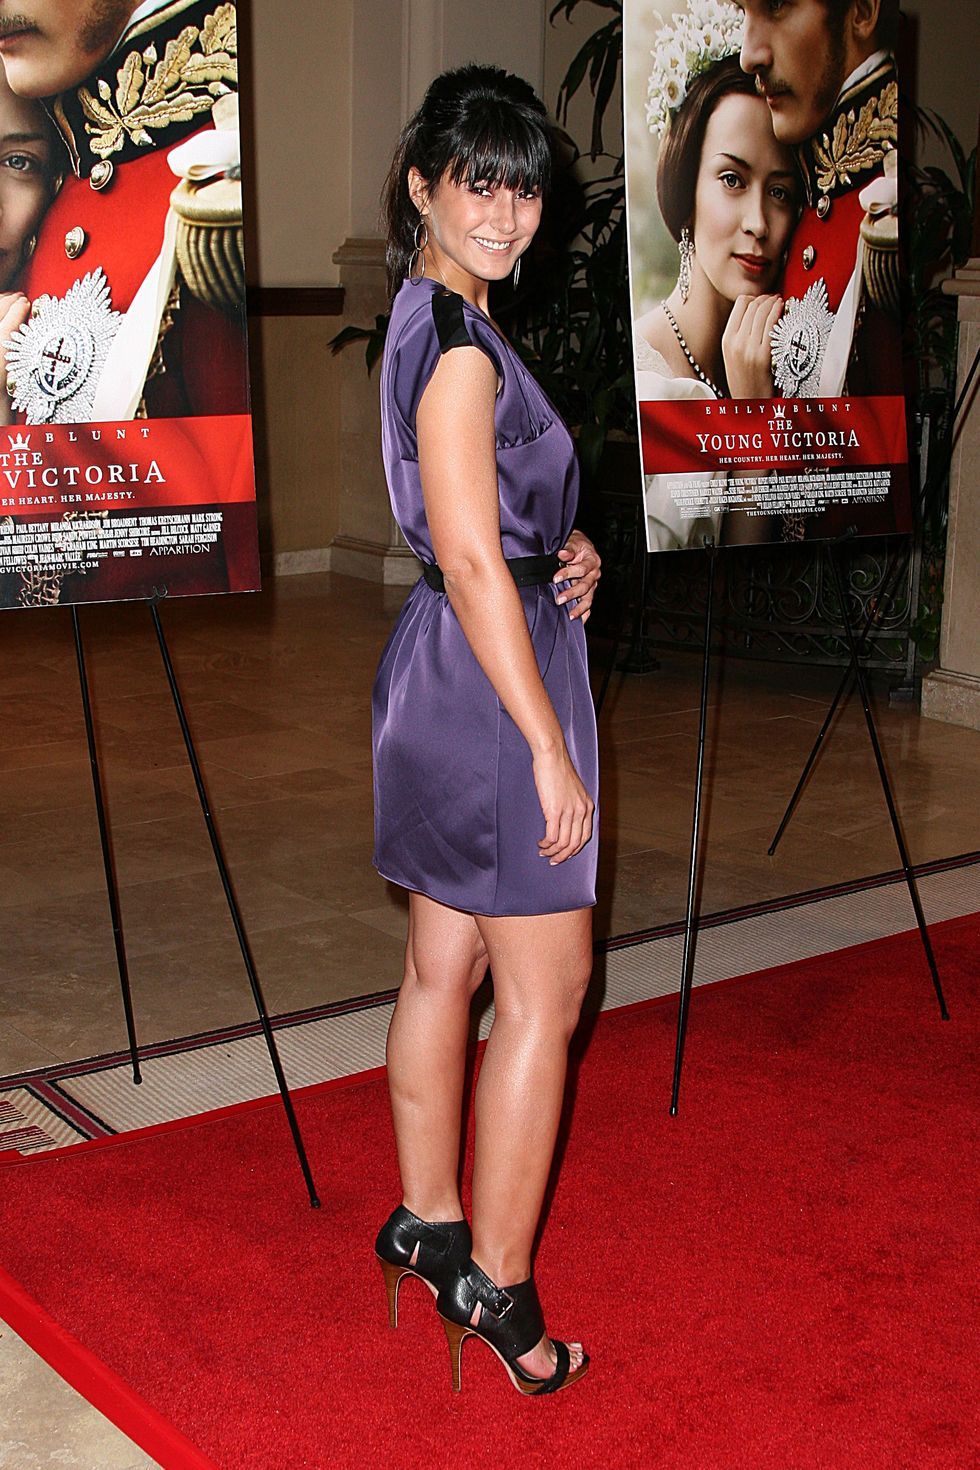 emmanuelle-chriqui-the-young-victoria-premiere-in-los-angeles-01